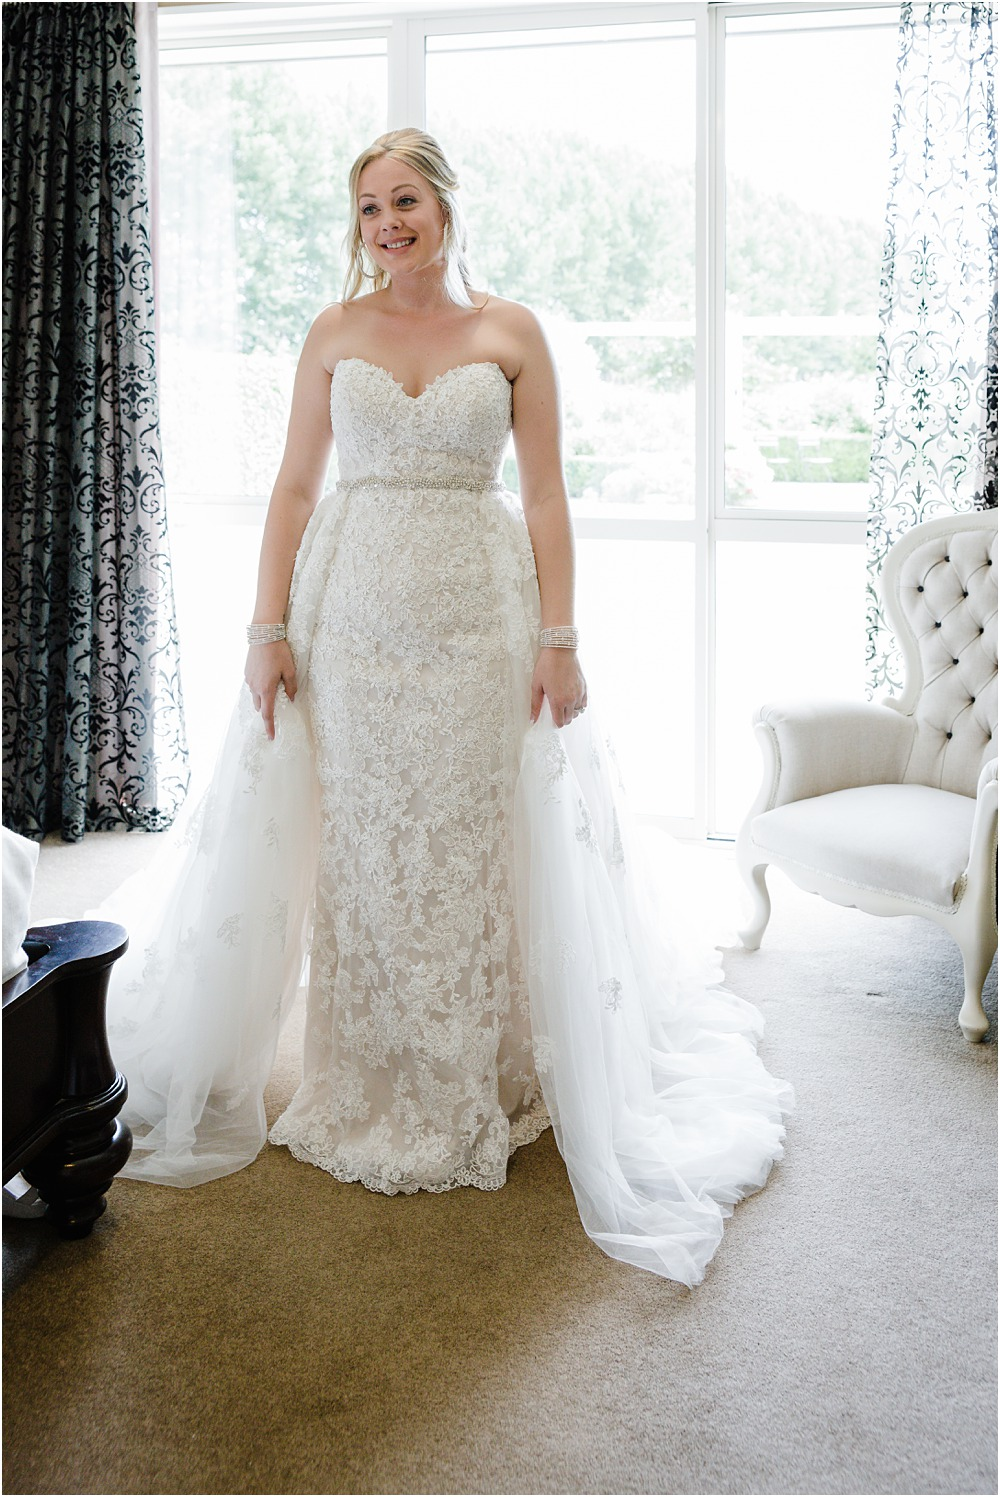 bride in her wedding dress in the bridal suite at lacebark